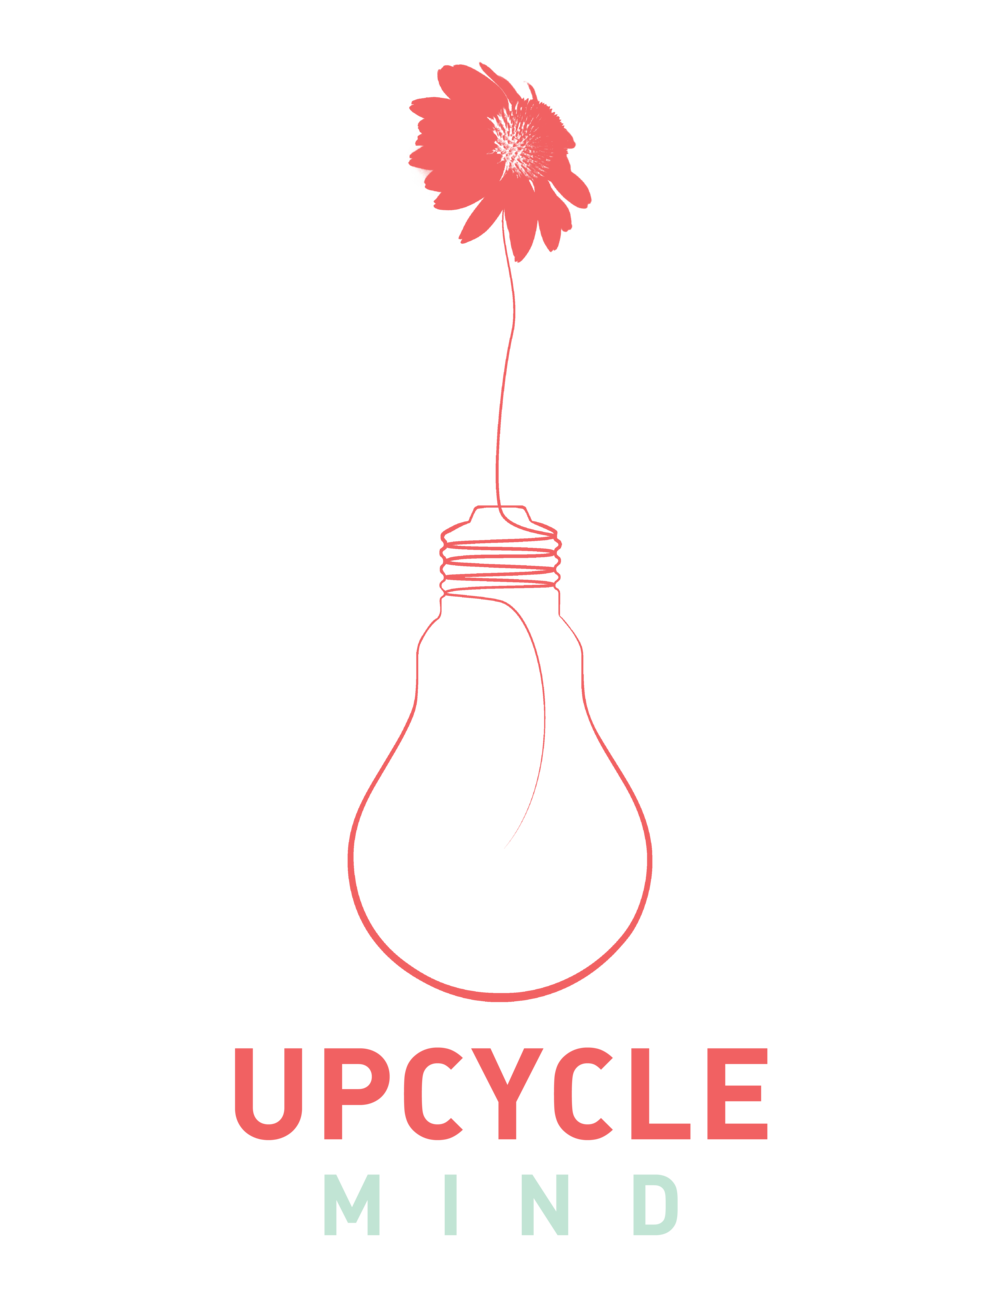 upcycle_logo_2.png